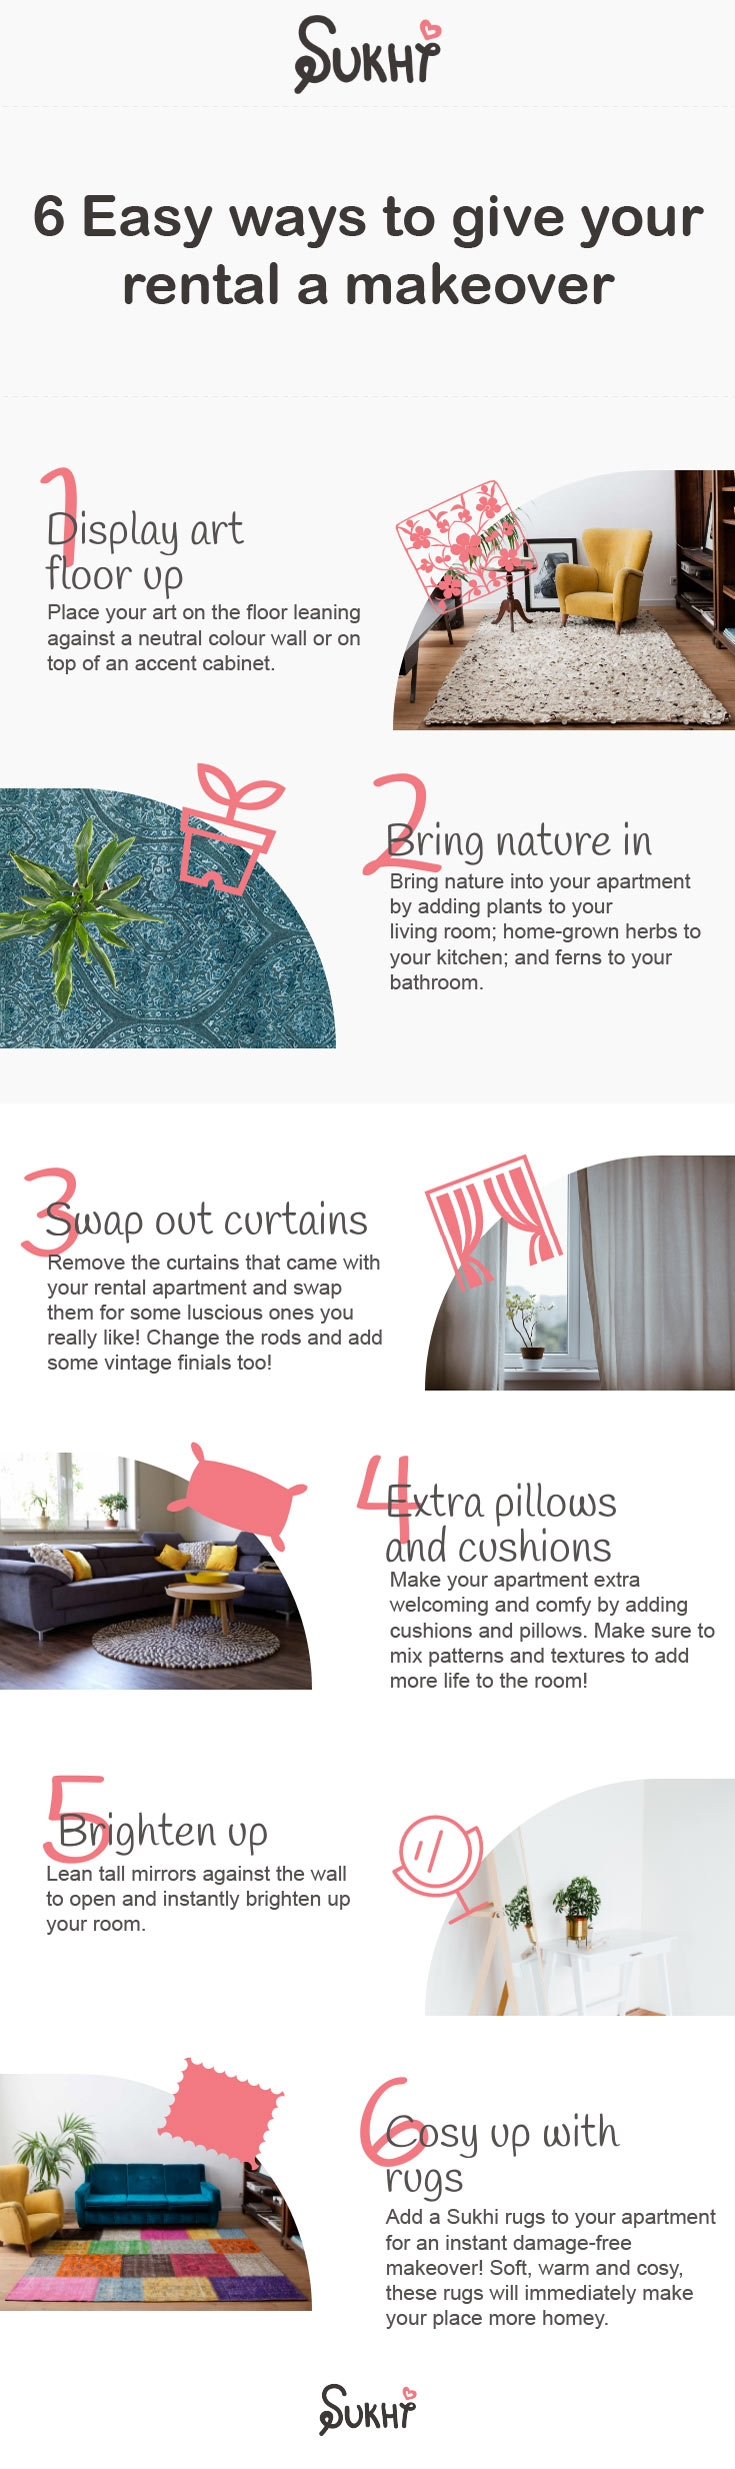 easy-ways-to-decorate-your-rental-apartment-without-breaking-any-rules